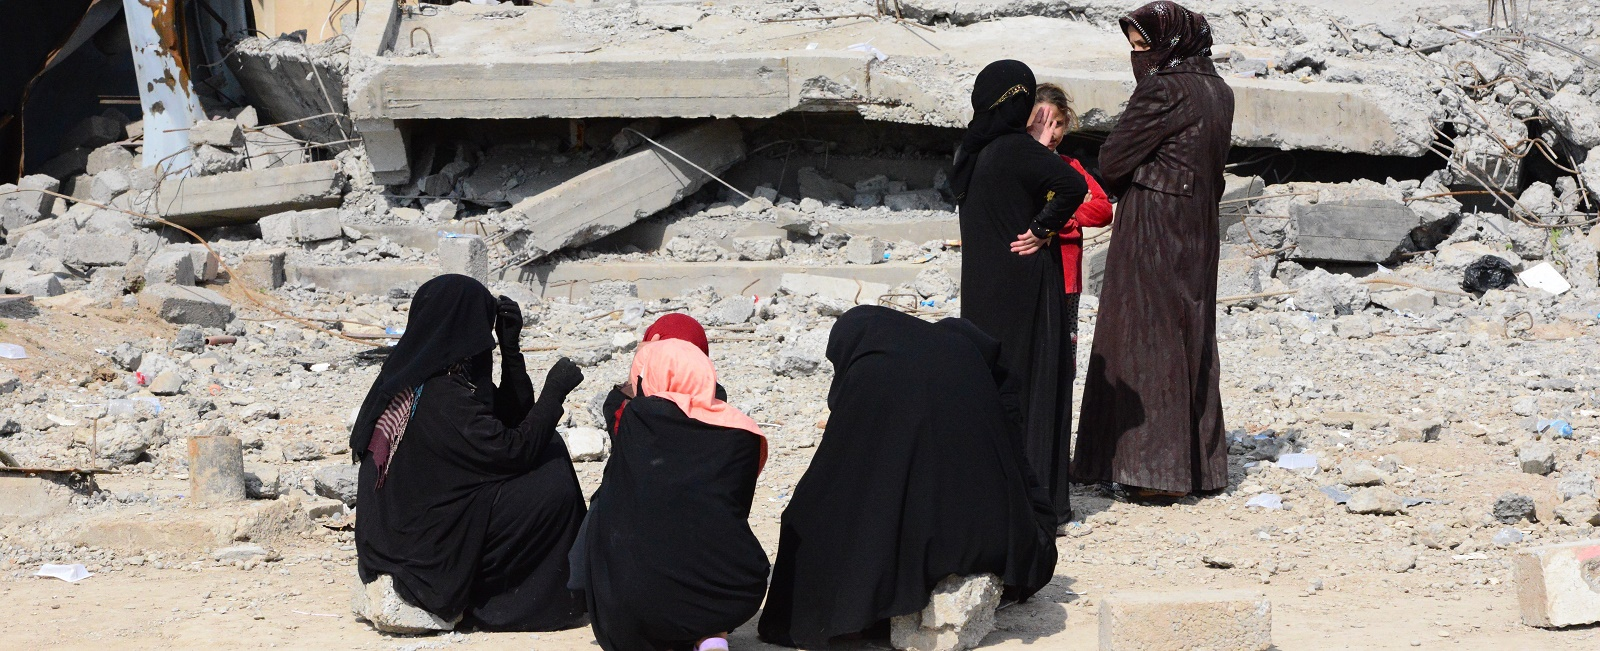 Women wait in front of building debris as Iraqi civilians head for shelter in Mosul on 26 March. (Photo by Hamit Huseyin/Getty Images)